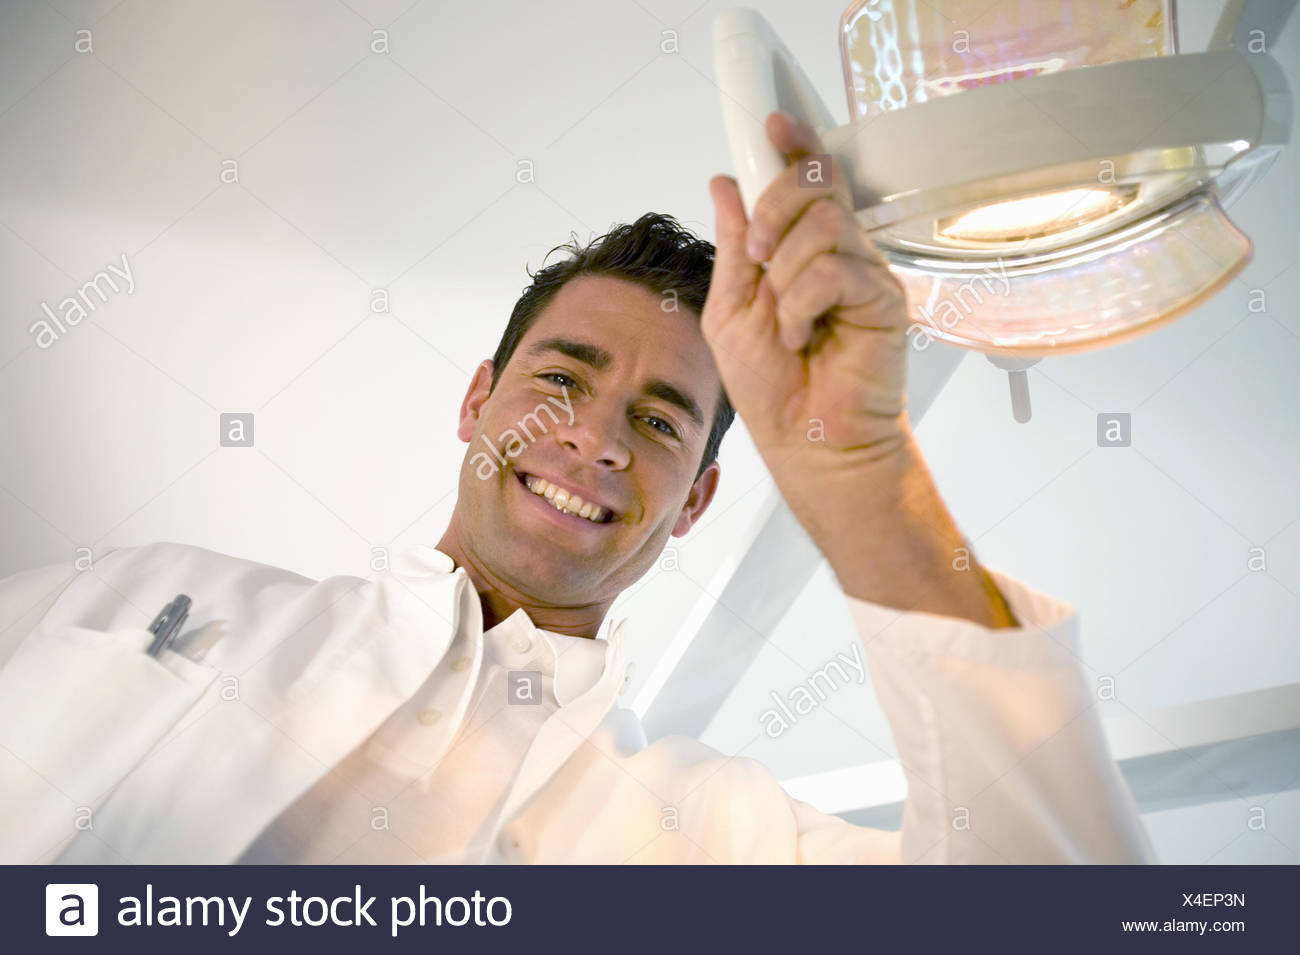 Male dentist smiling and adjusting dental light - Stock Image